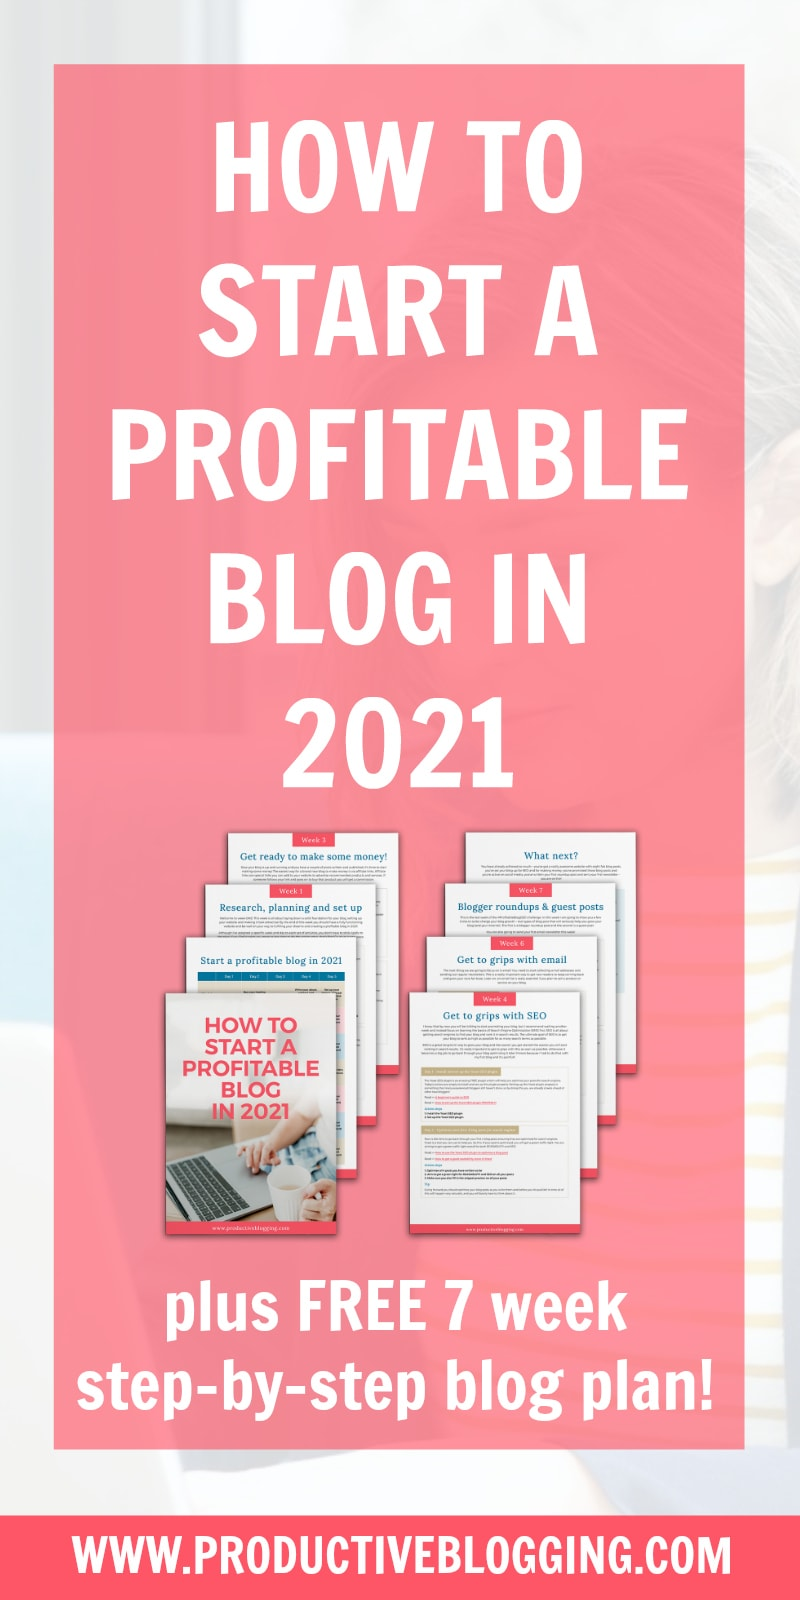 Want to start a profitable blog in 2021 but don't know where to start? Or maybe you already have a blog, but you still haven't made any money yet? In this post I show you the steps you need to take to go from zero to a profitable blog in 2021! #startablog #startablog2021 #profitableblog #makemoneyblogging #newblogger #bloggingnewbie #selfhosted #wordpressblog #siteground #newblog2021 #newyearnewblog #newyearsresolutions #blogplan #blogplanner #bloggingtips #productiveblogging #profitableblog2021